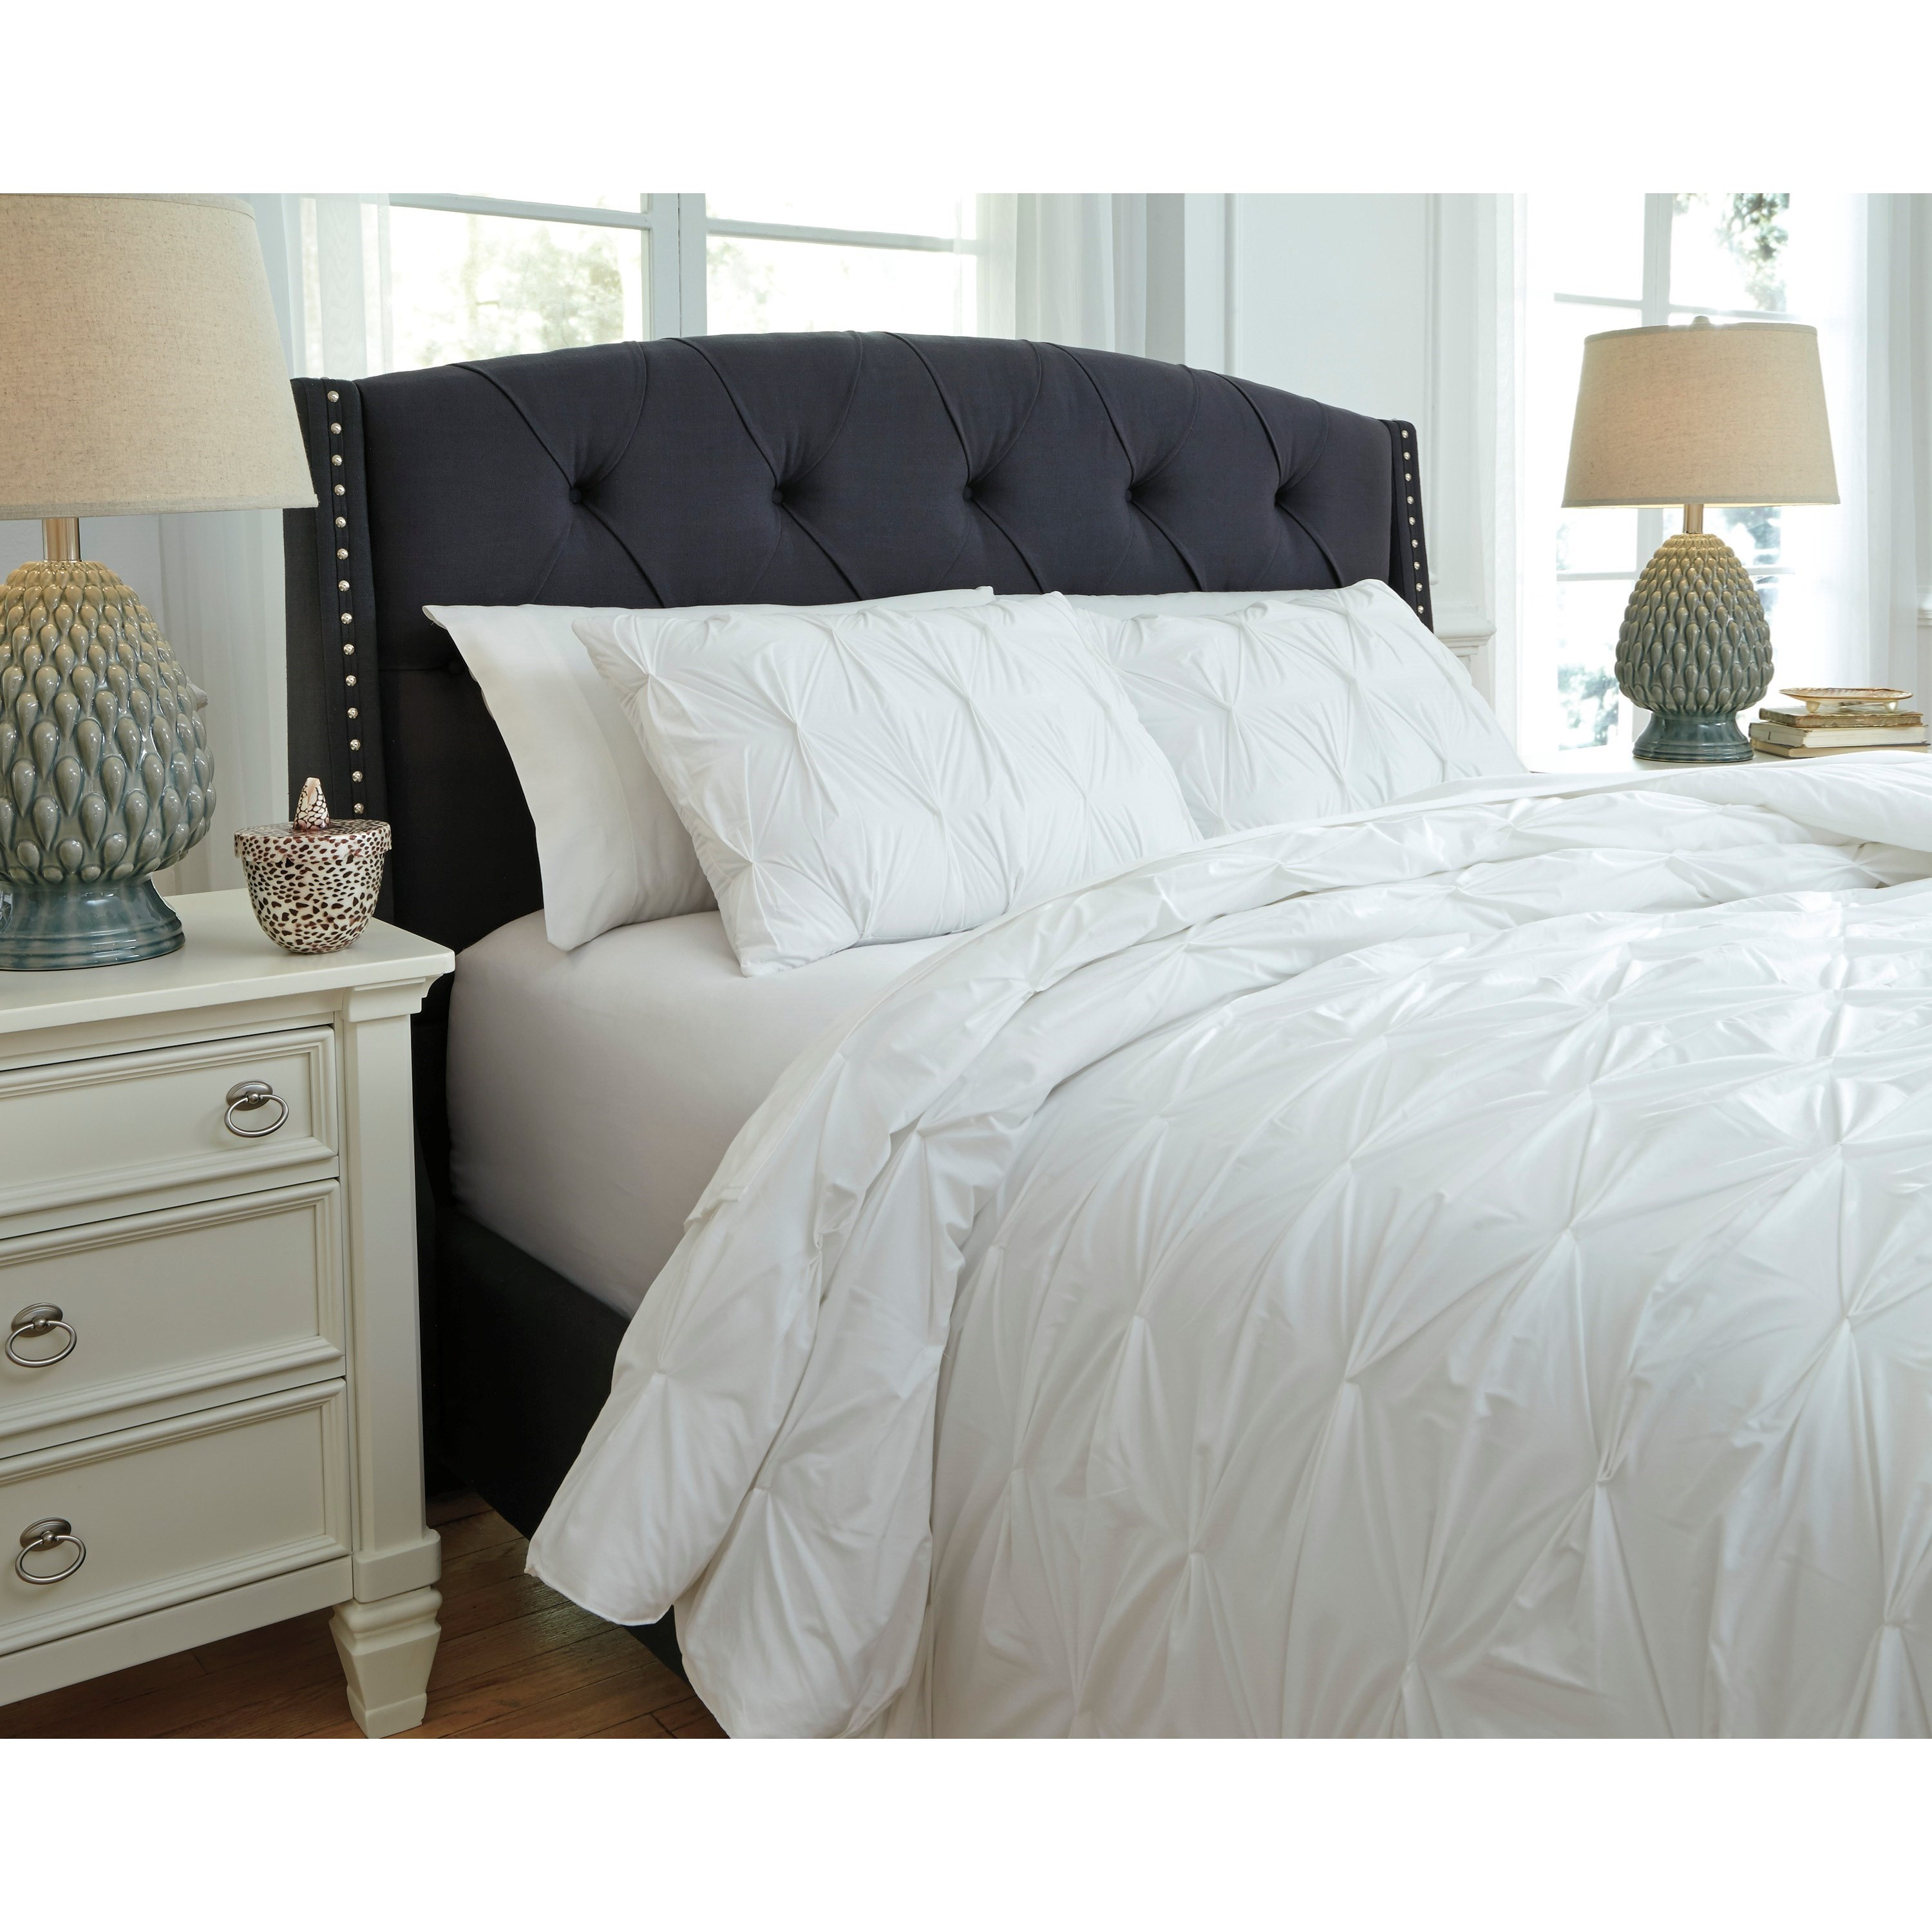 Signature Design by Ashley Bedding Sets Q Q Queen